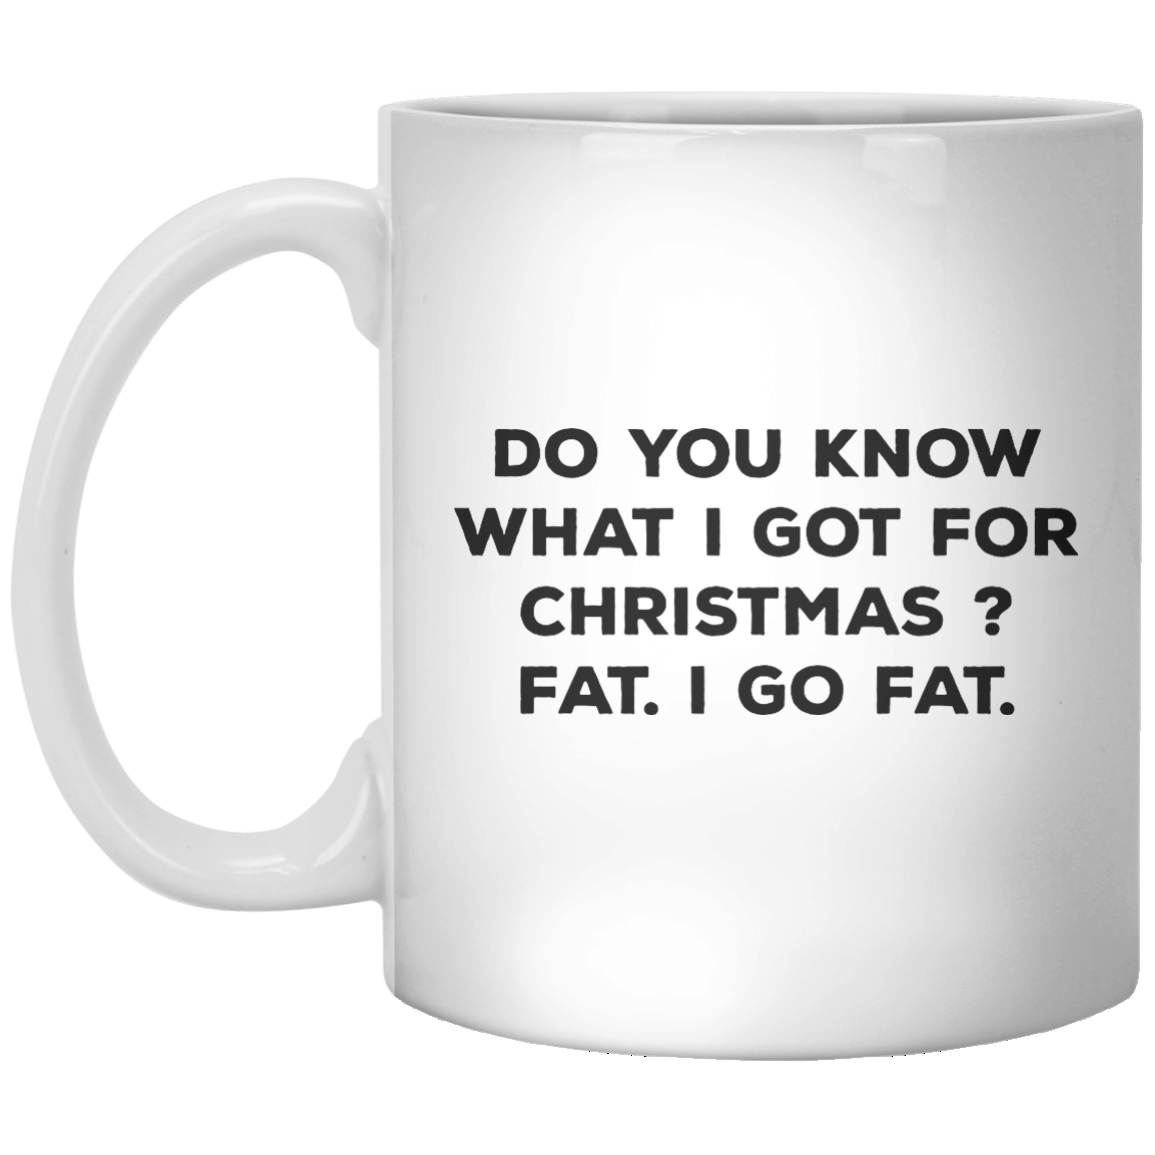 Do You Know What I Got For Christmas  Fat I Go Fat MUG - Shirtoopia